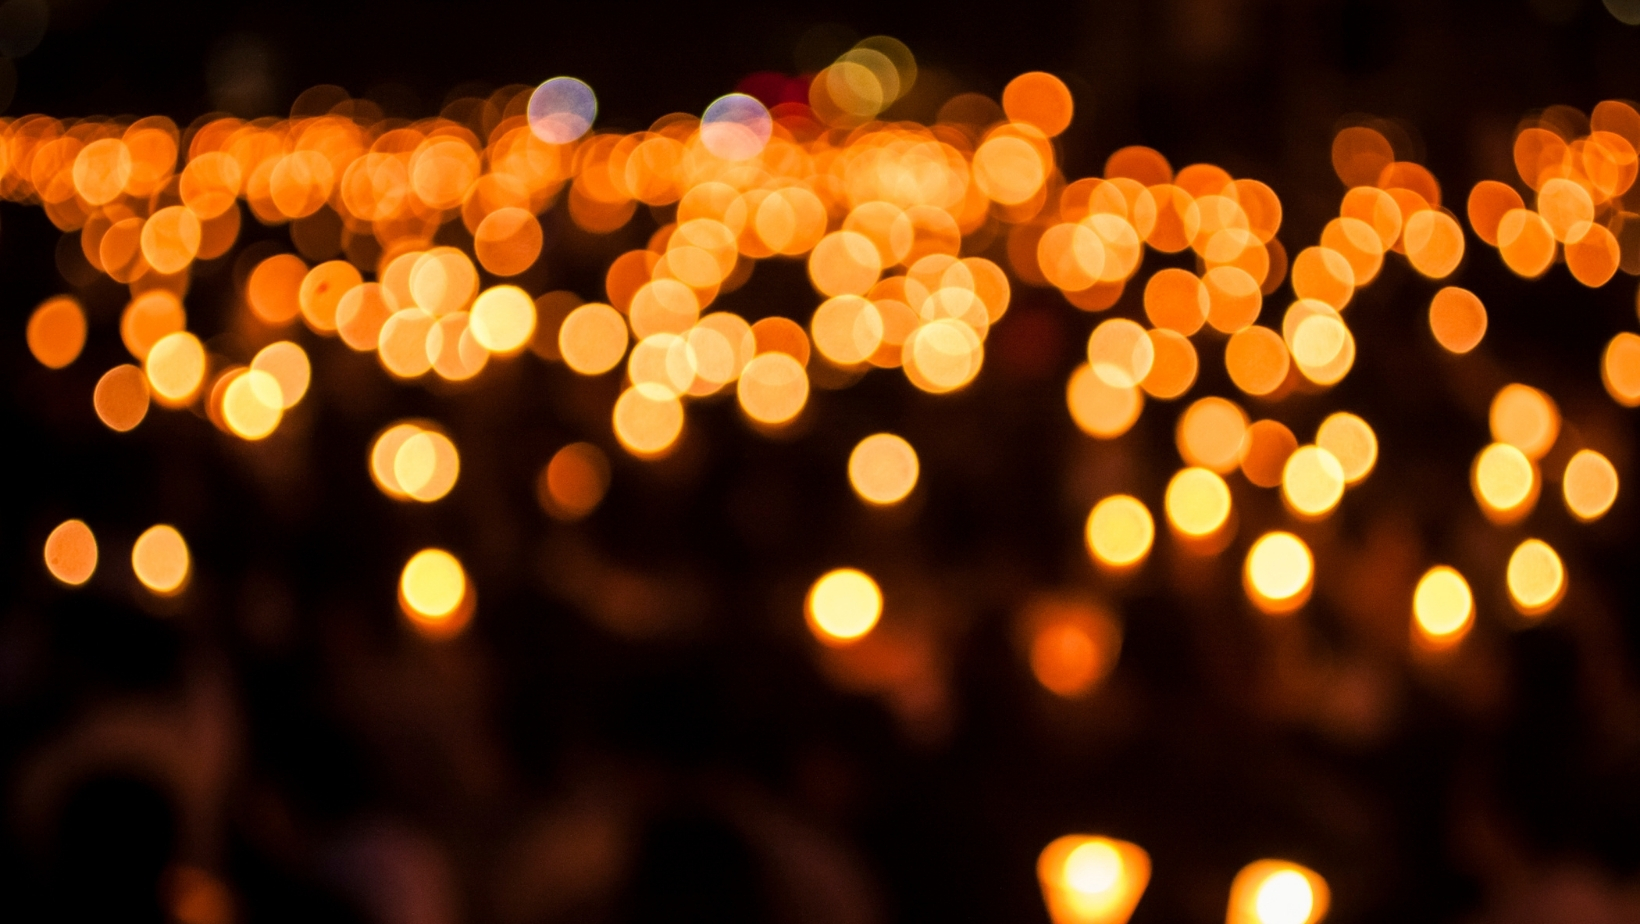 Carols by Candlelight, New South Wales, Australia